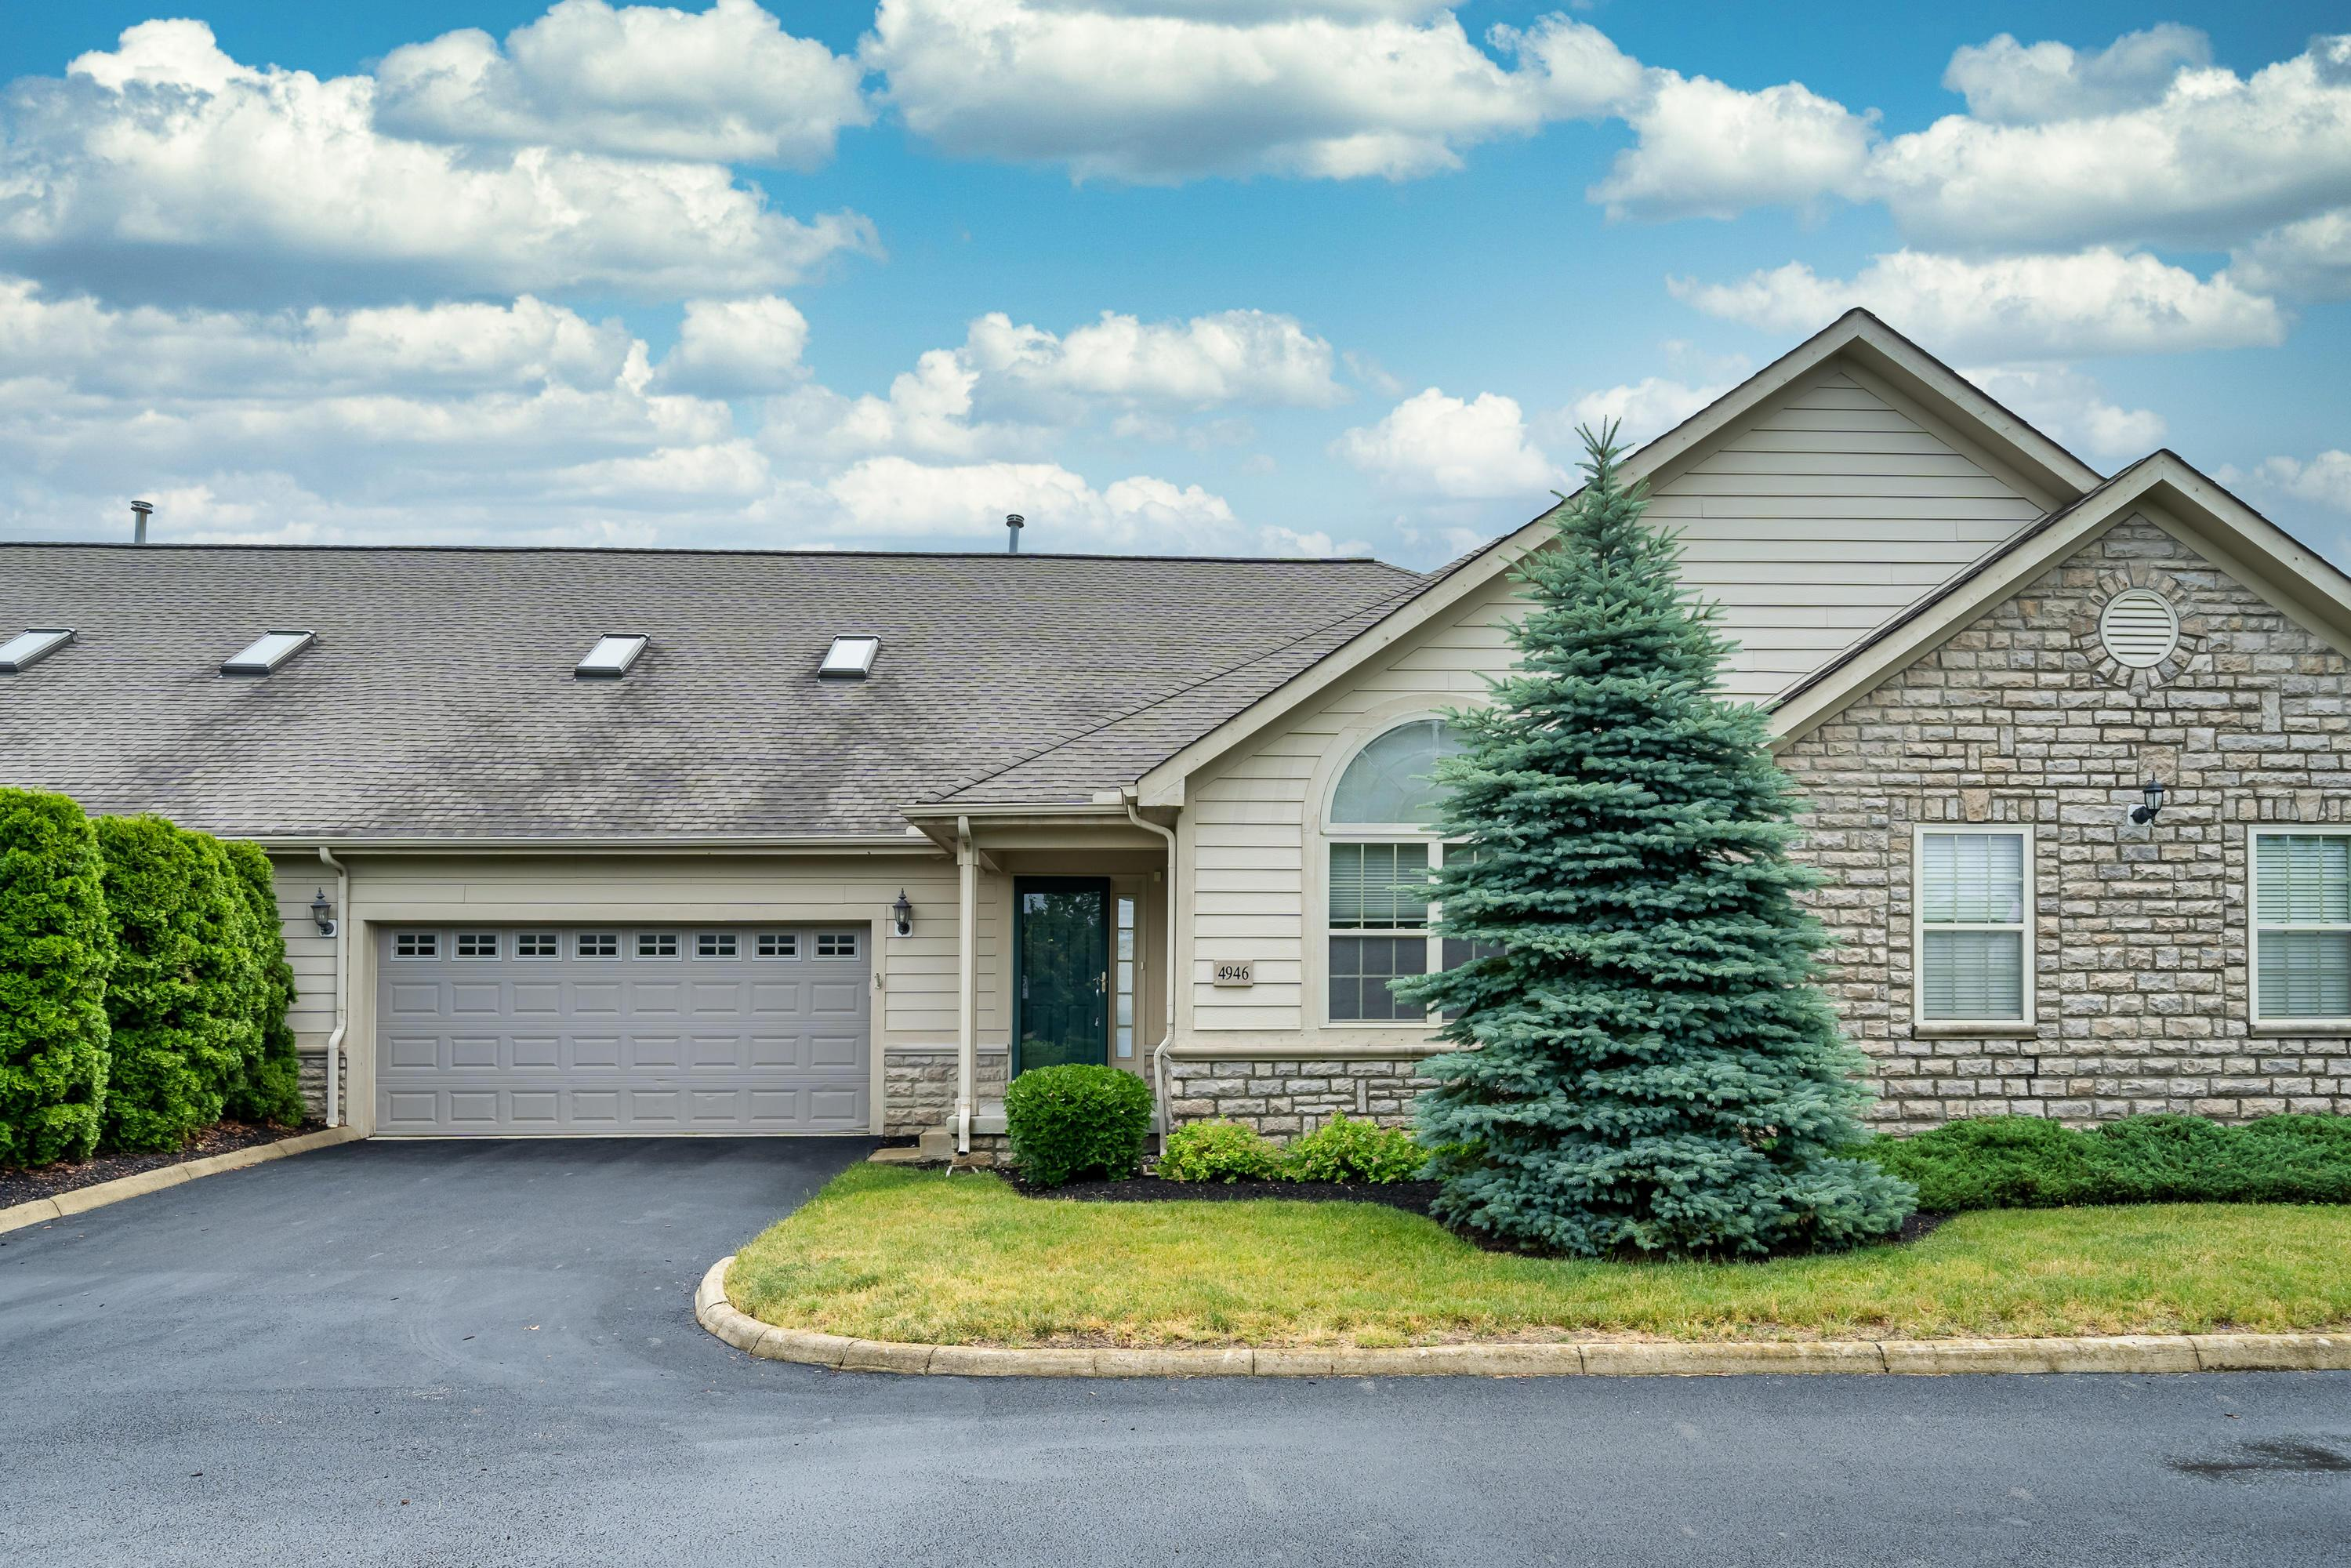 4946 Rays Circle, Dublin, Ohio 43016, 2 Bedrooms Bedrooms, ,3 BathroomsBathrooms,Residential,For Sale,Rays,220020306